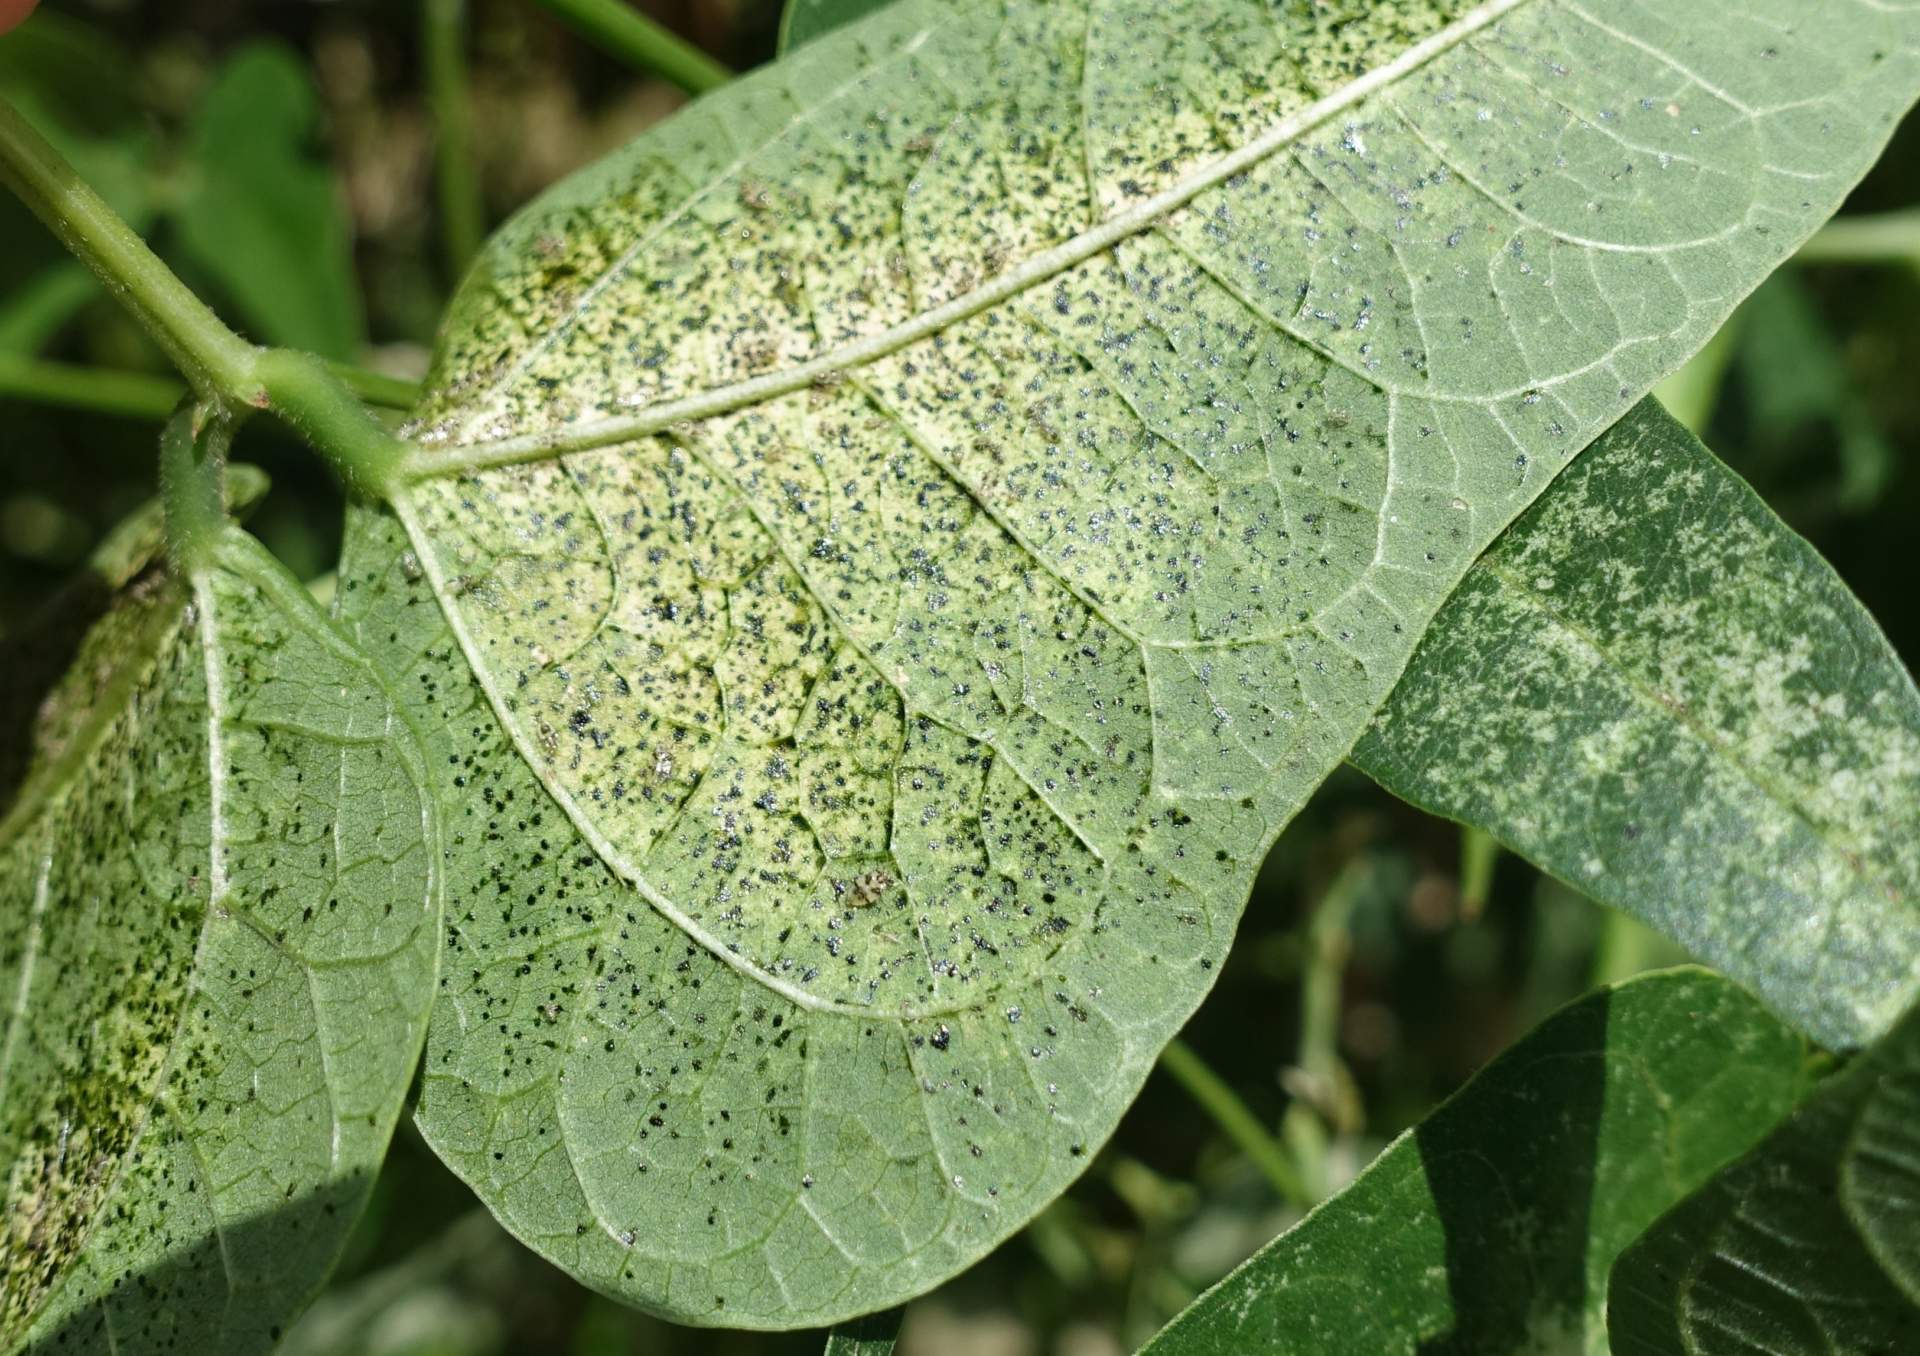 leaf damage caused by lace bugs